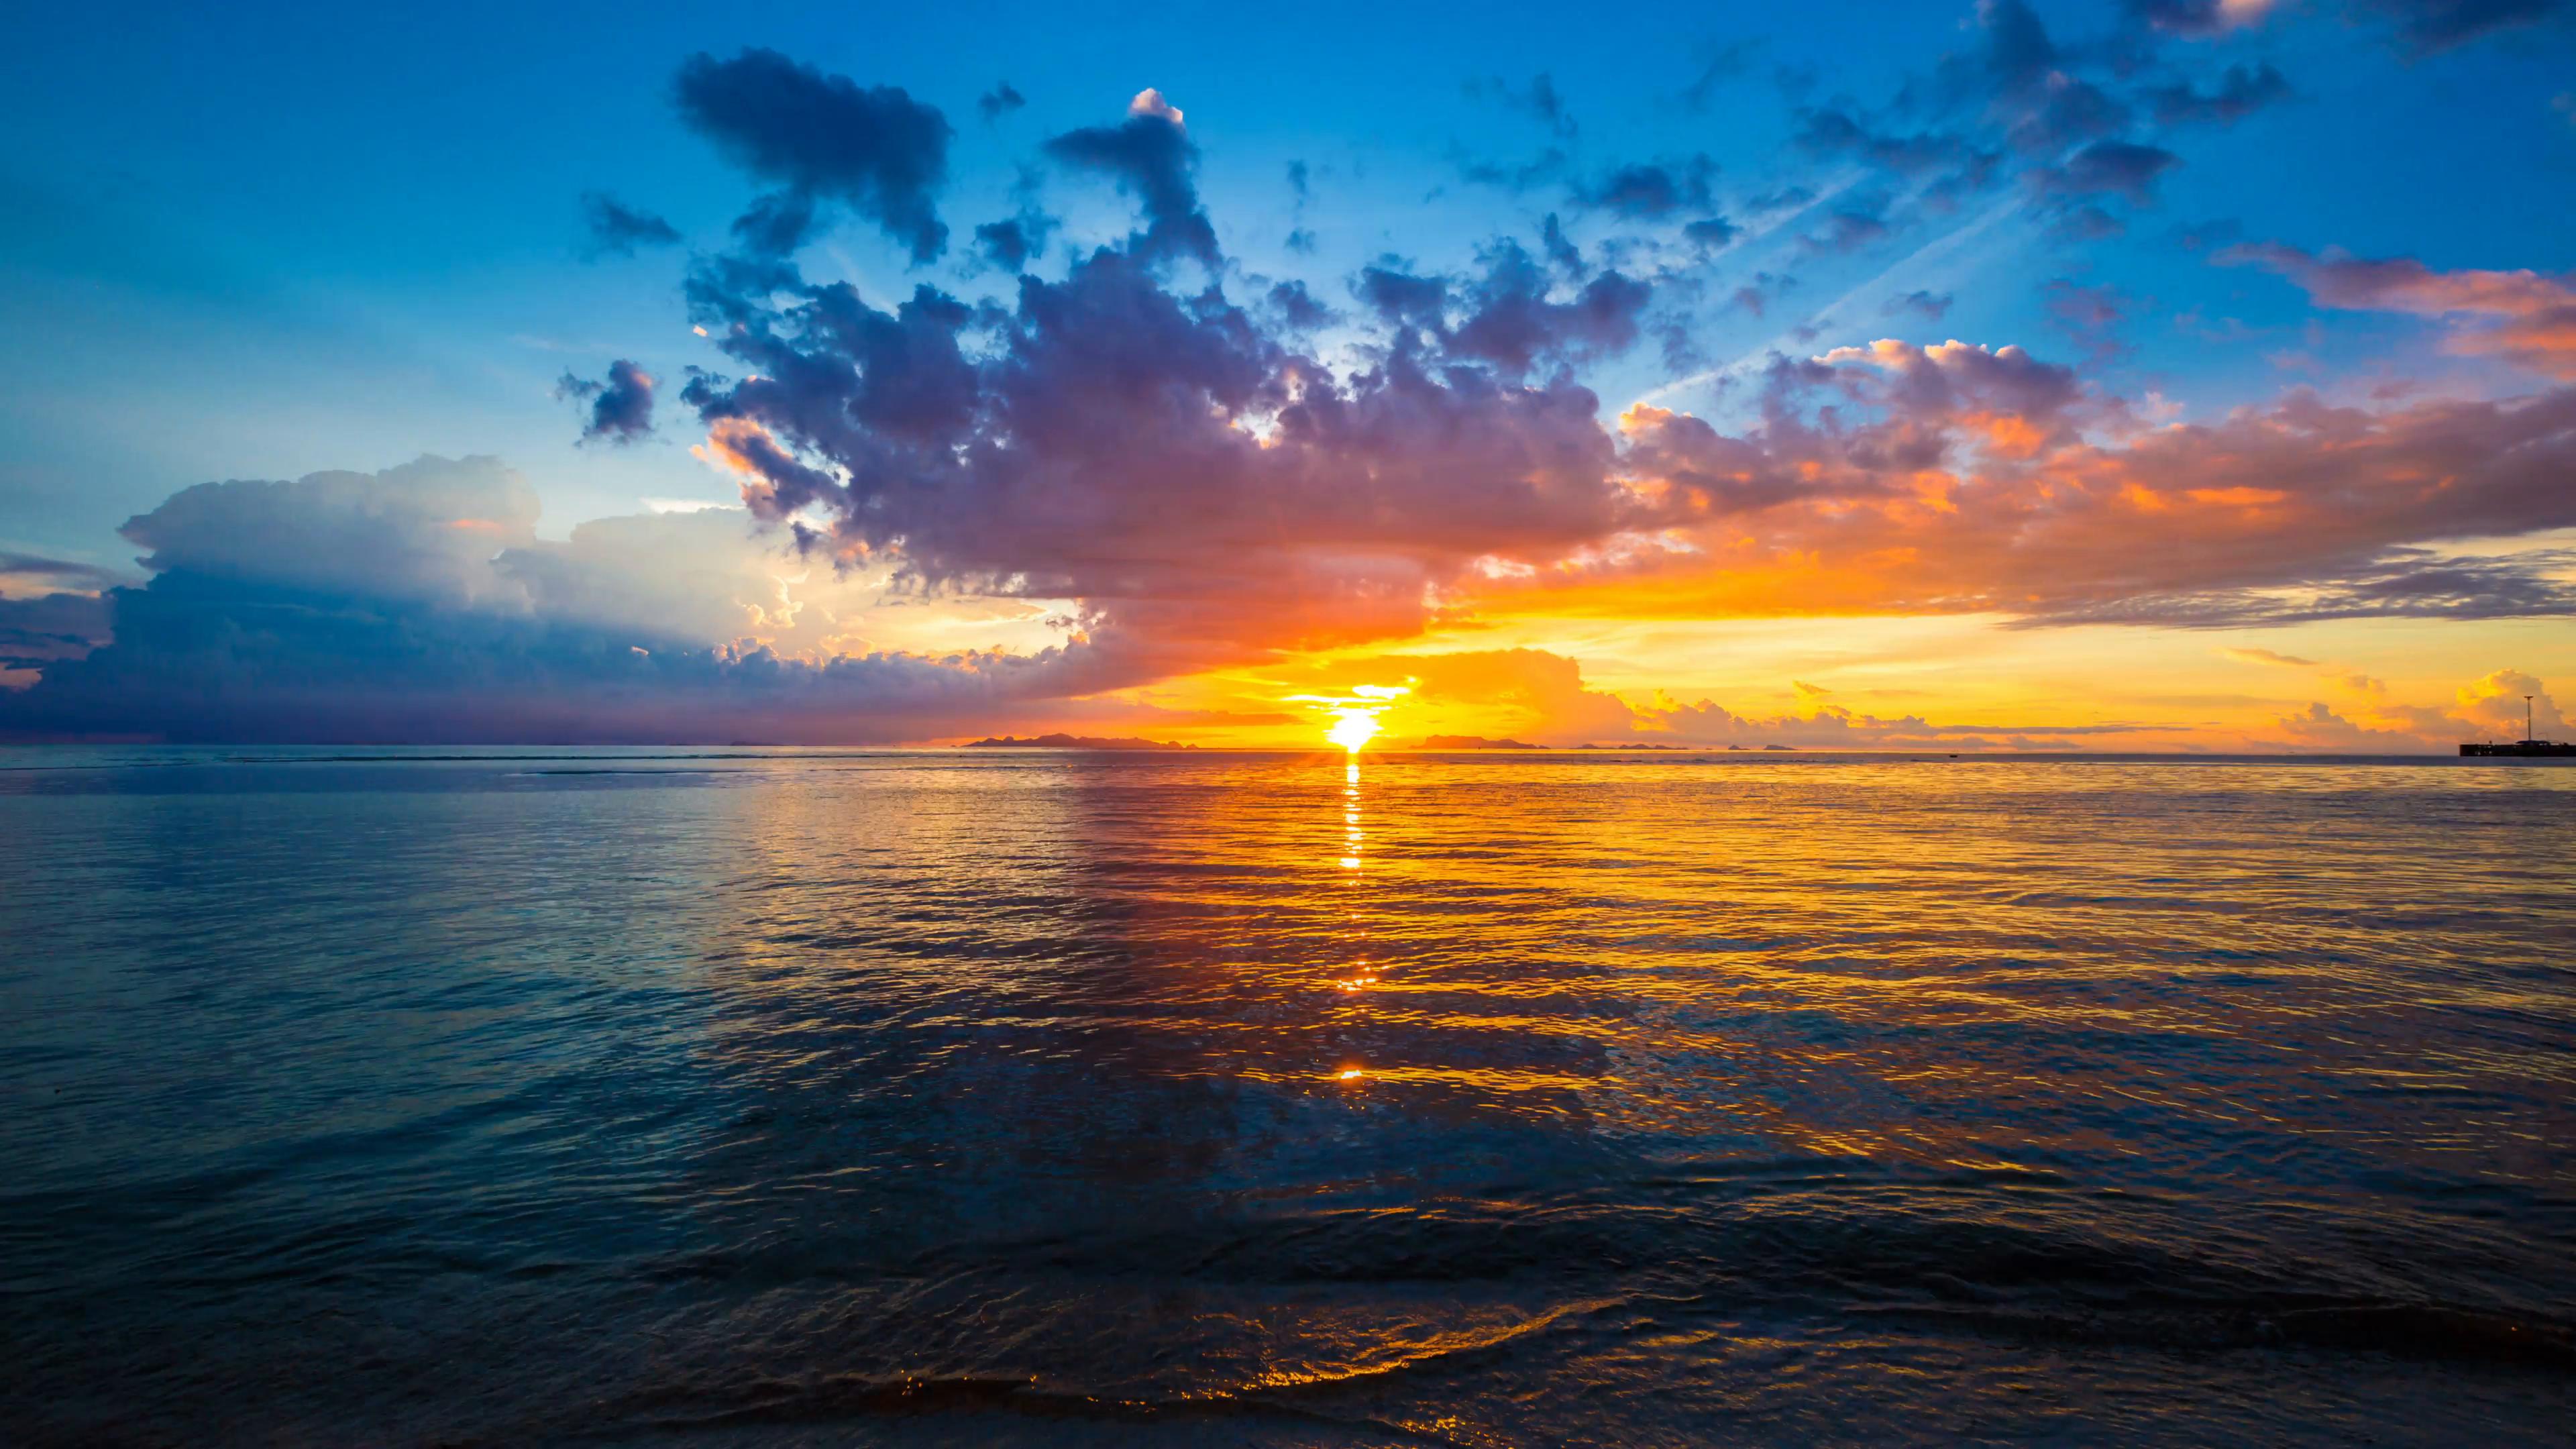 Free photo: Beautiful sunset - Sky, Sea, Skies - Free ...